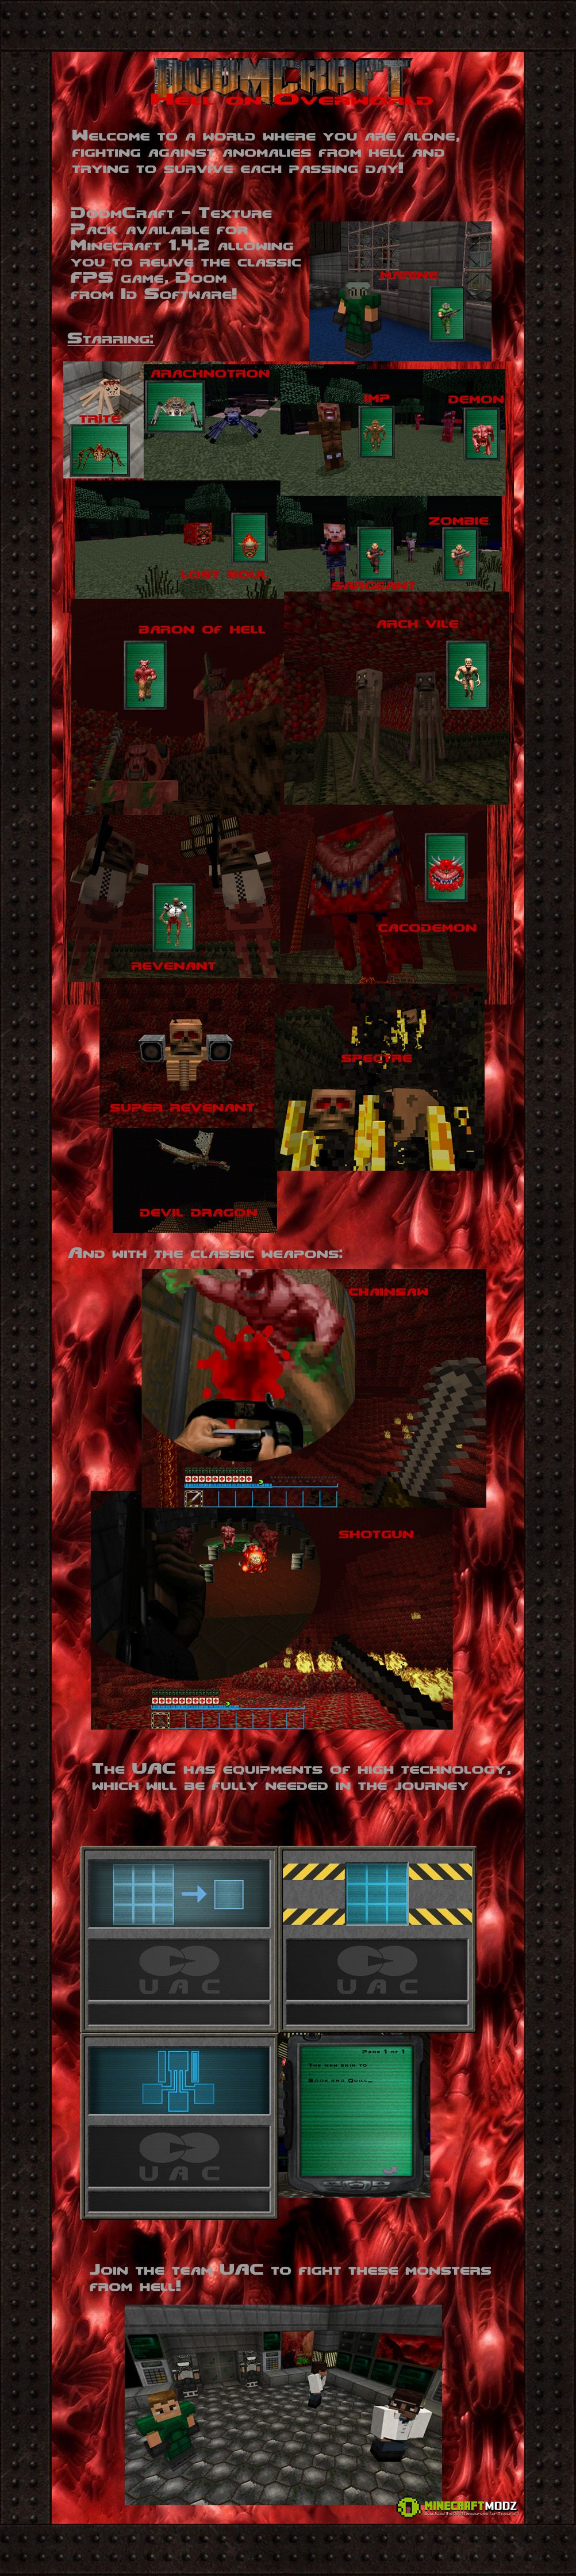 doom-craft-resource-texture-pack-1-81-7-51-7-41-7-21-6-4-2149-2 Doom Craft Resource (Texture) Pack 1.8/1.7.5/1.7.4/1.7.2/1.6.4